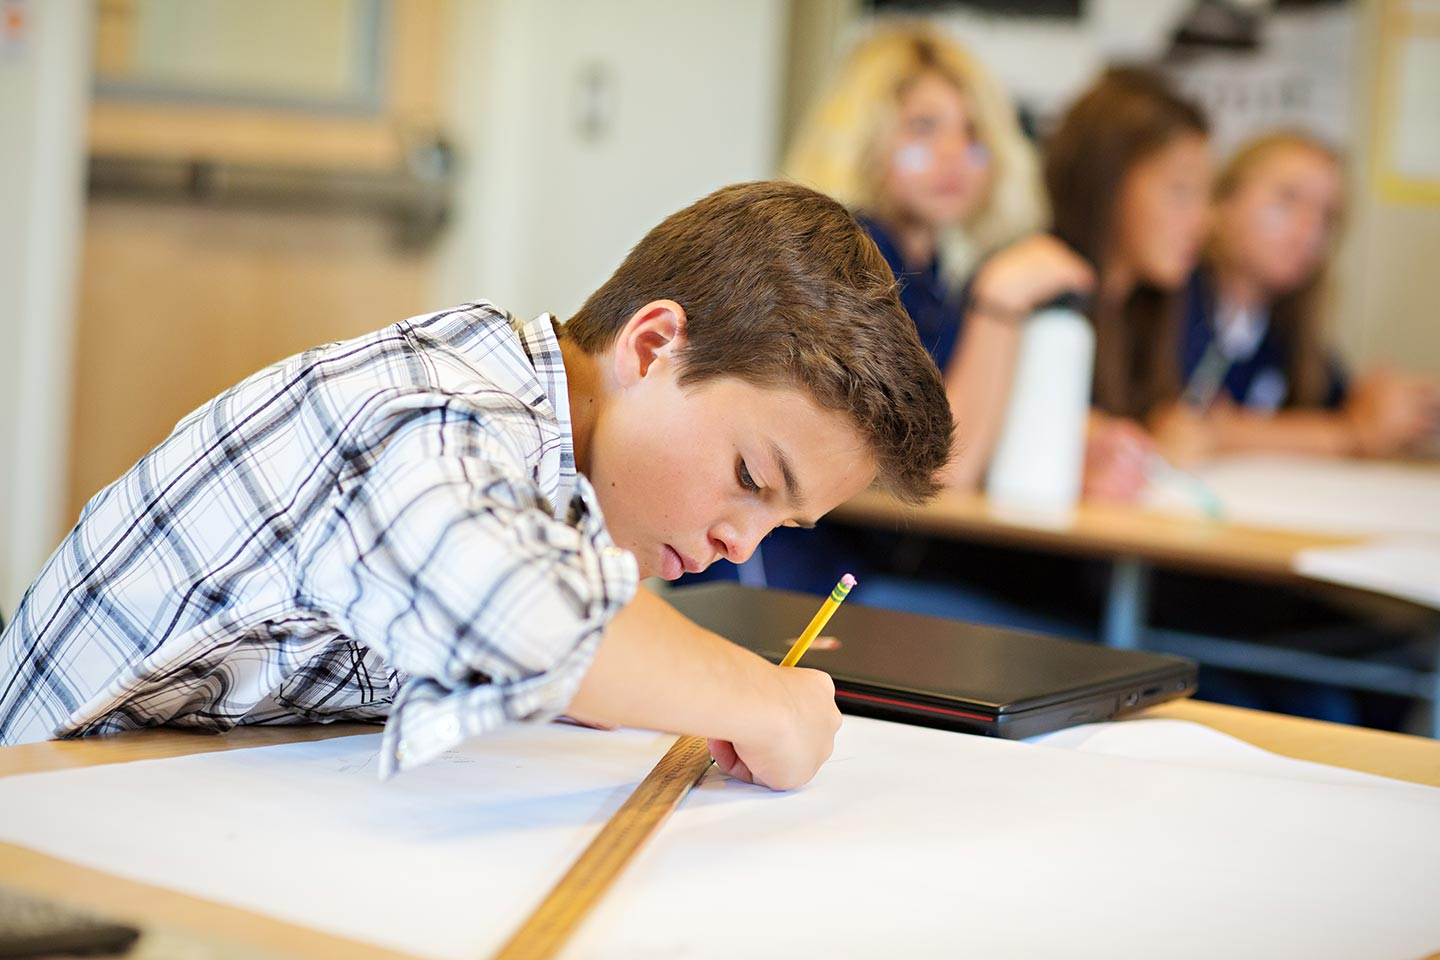 A student working in a classroom at our private day school in Sun Valley, Idaho